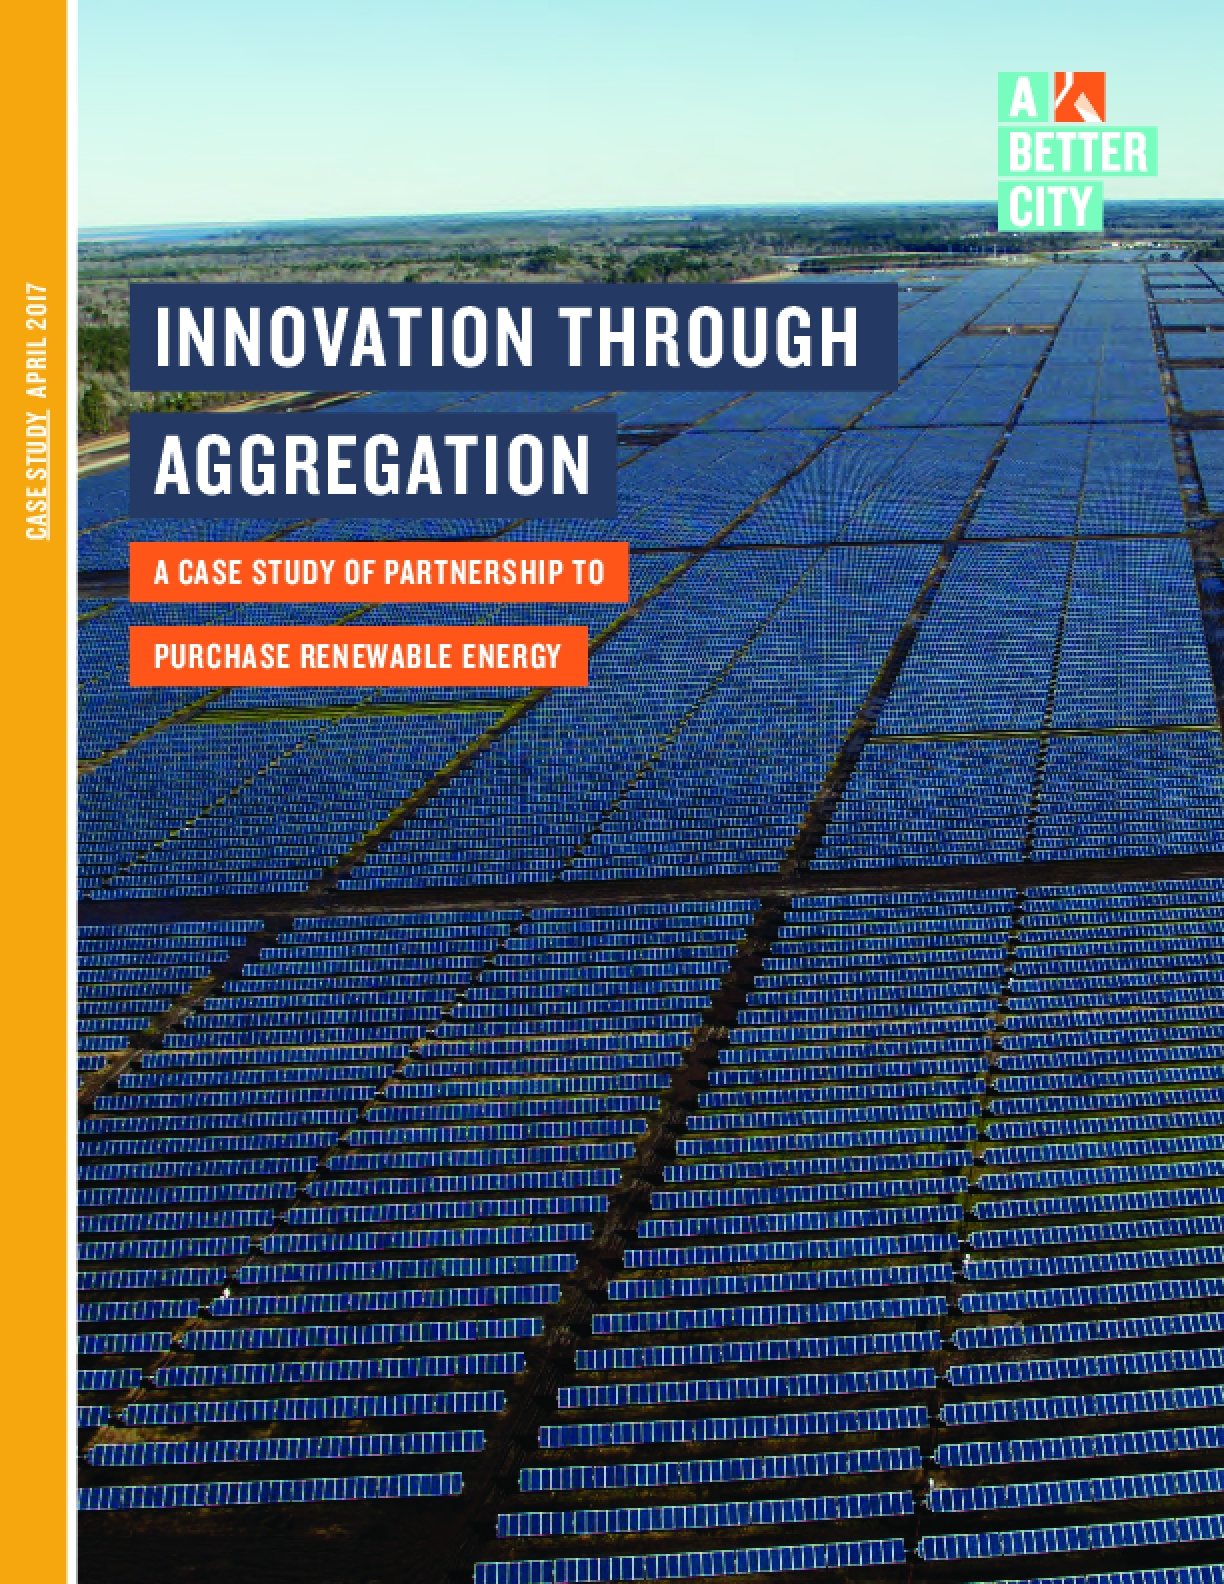 Innovation Through Aggregation: A Case Study of Partnerships to Purchase Renewable Energy